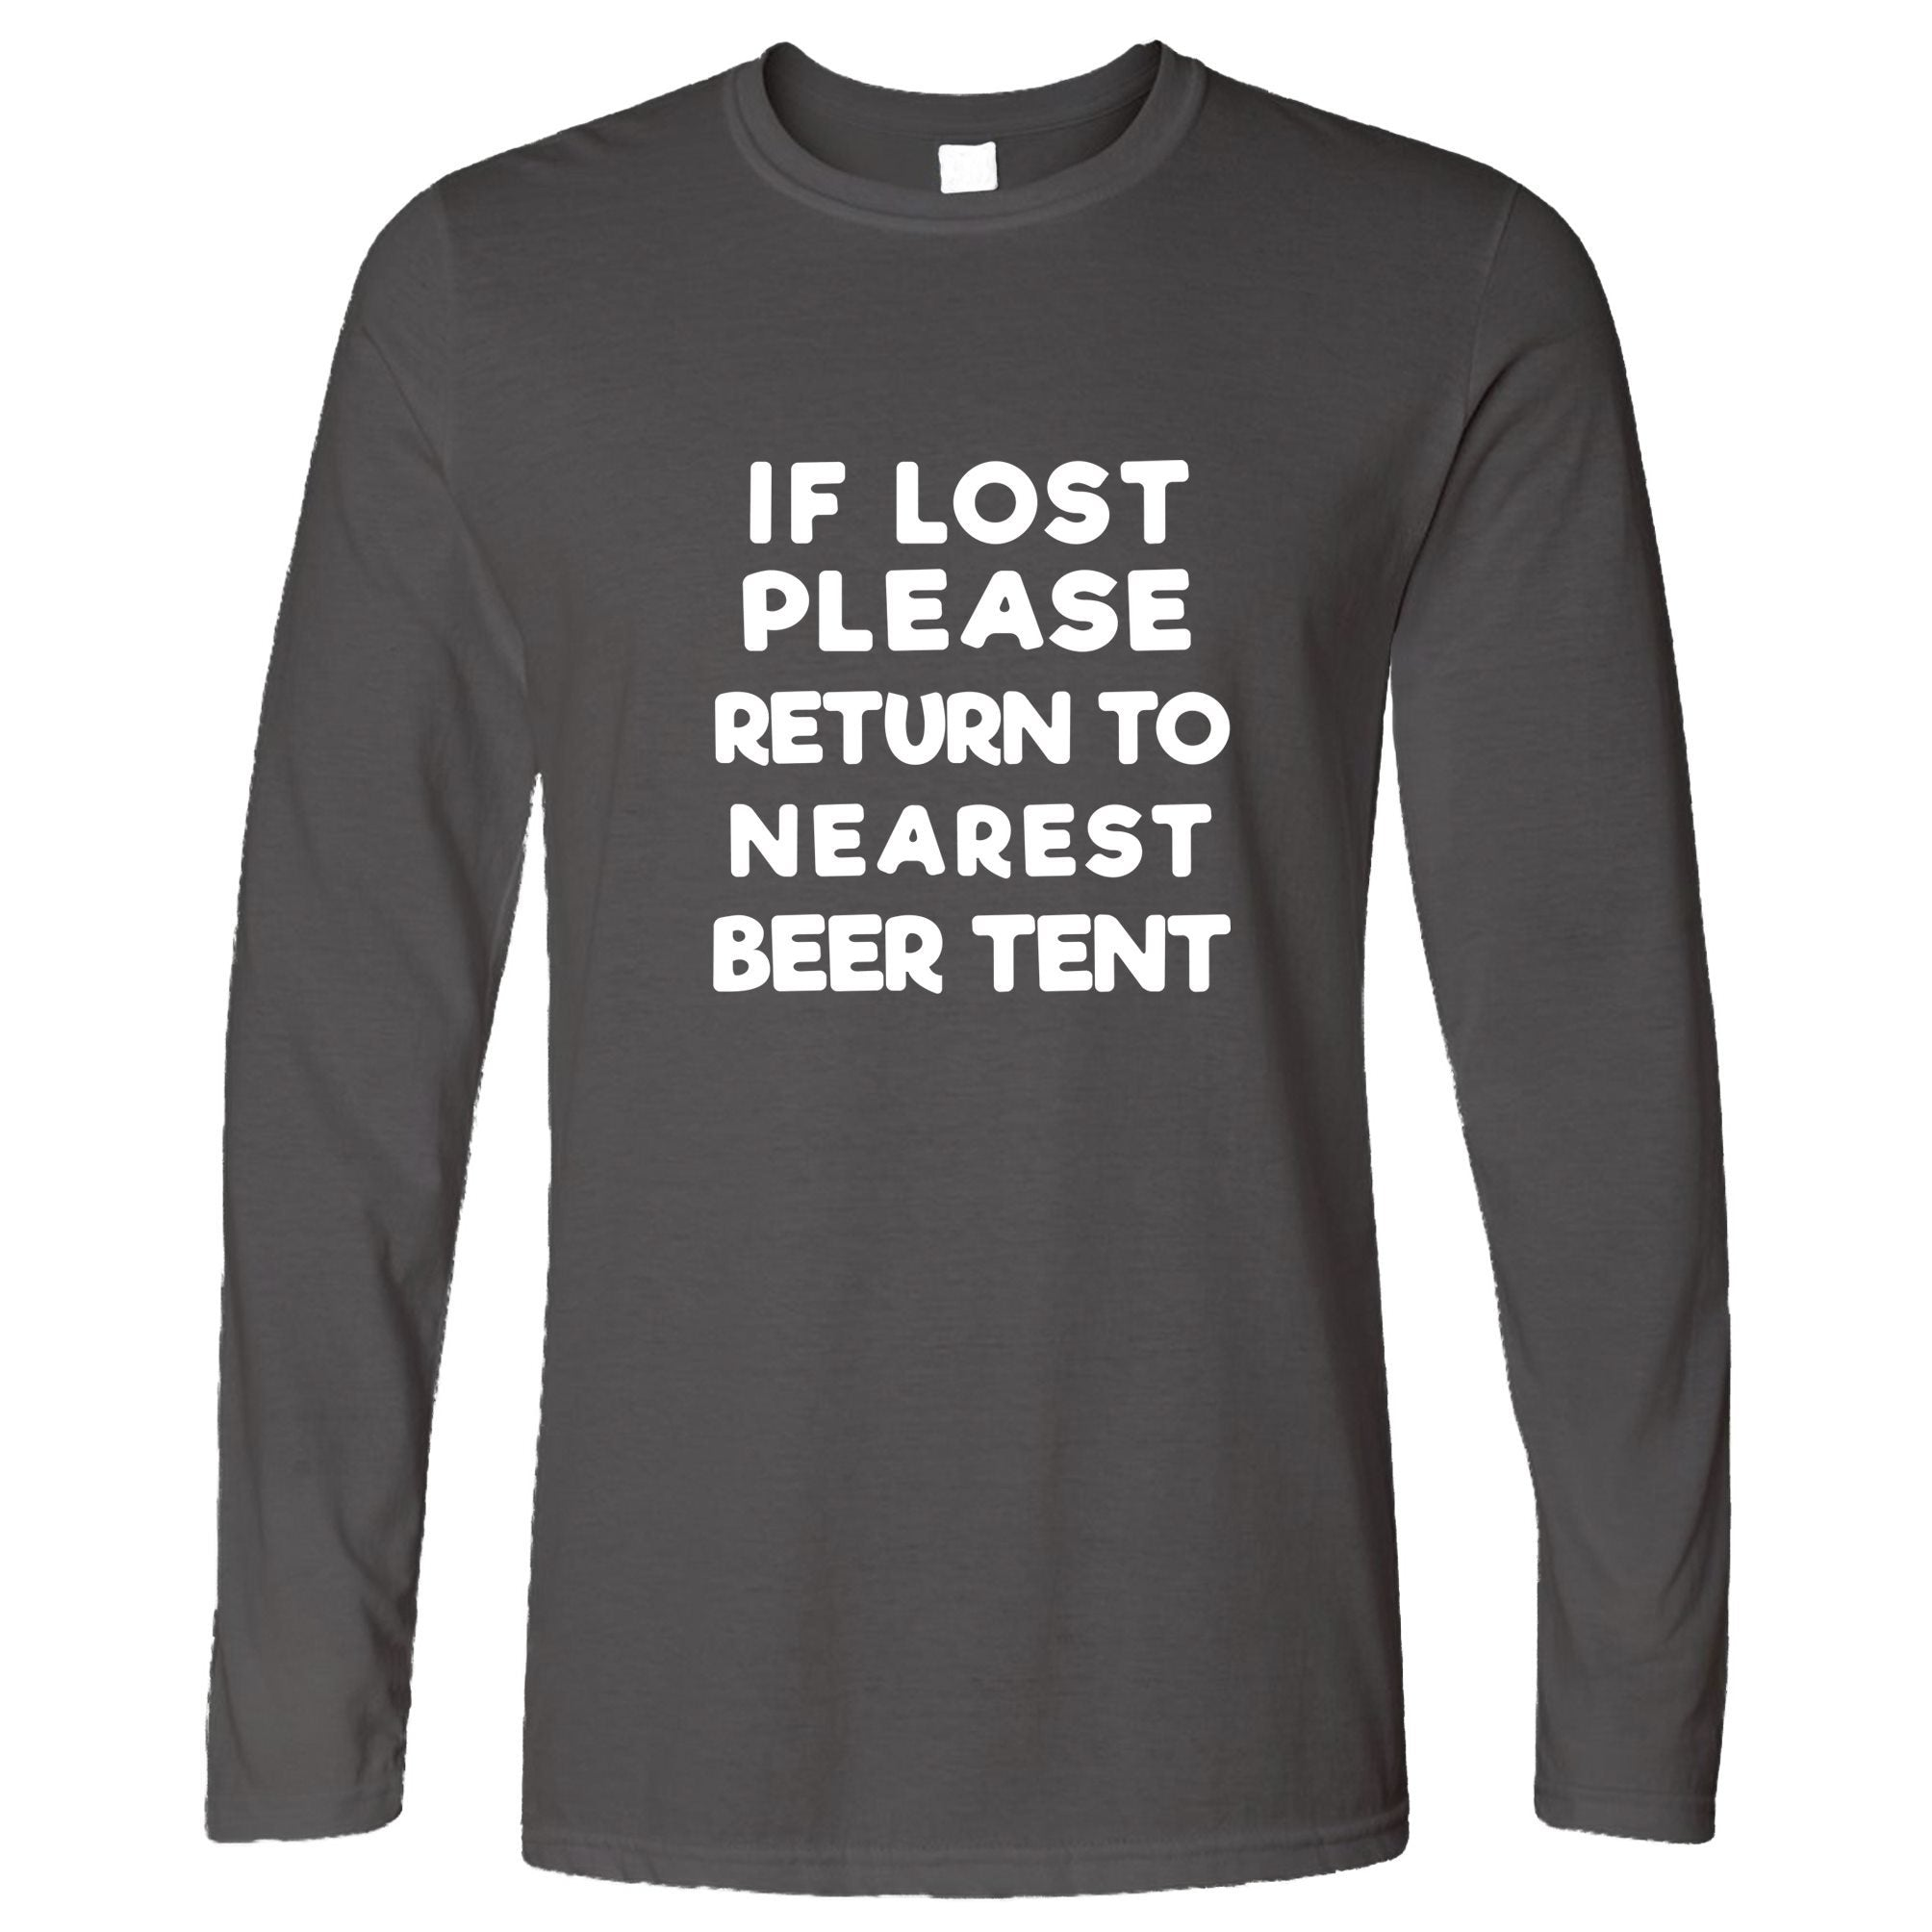 Novelty Festival Long Sleeve If Lost, Return To Beer Tent T-Shirt